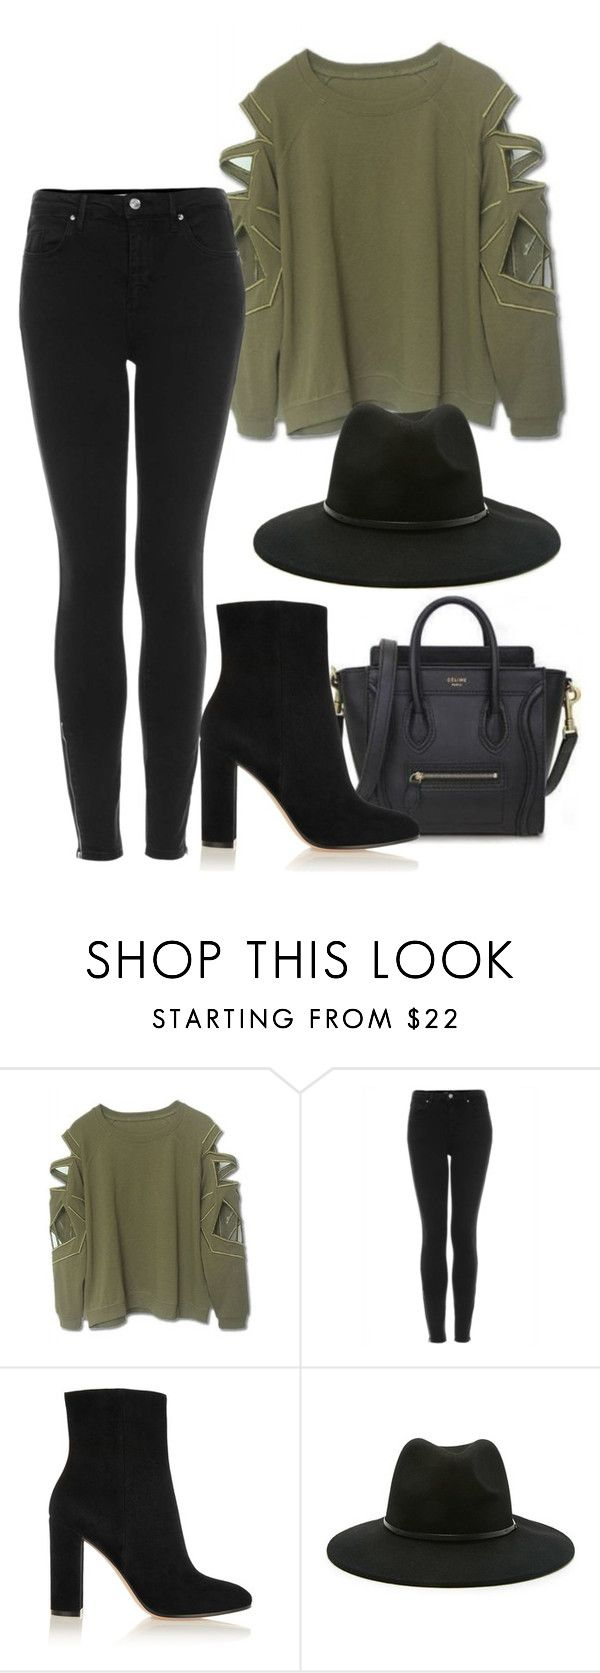 """Untitled #1219"" by artiola-fejza ❤ liked on Polyvore featuring Topshop, Gianvito Rossi and Forever 21"